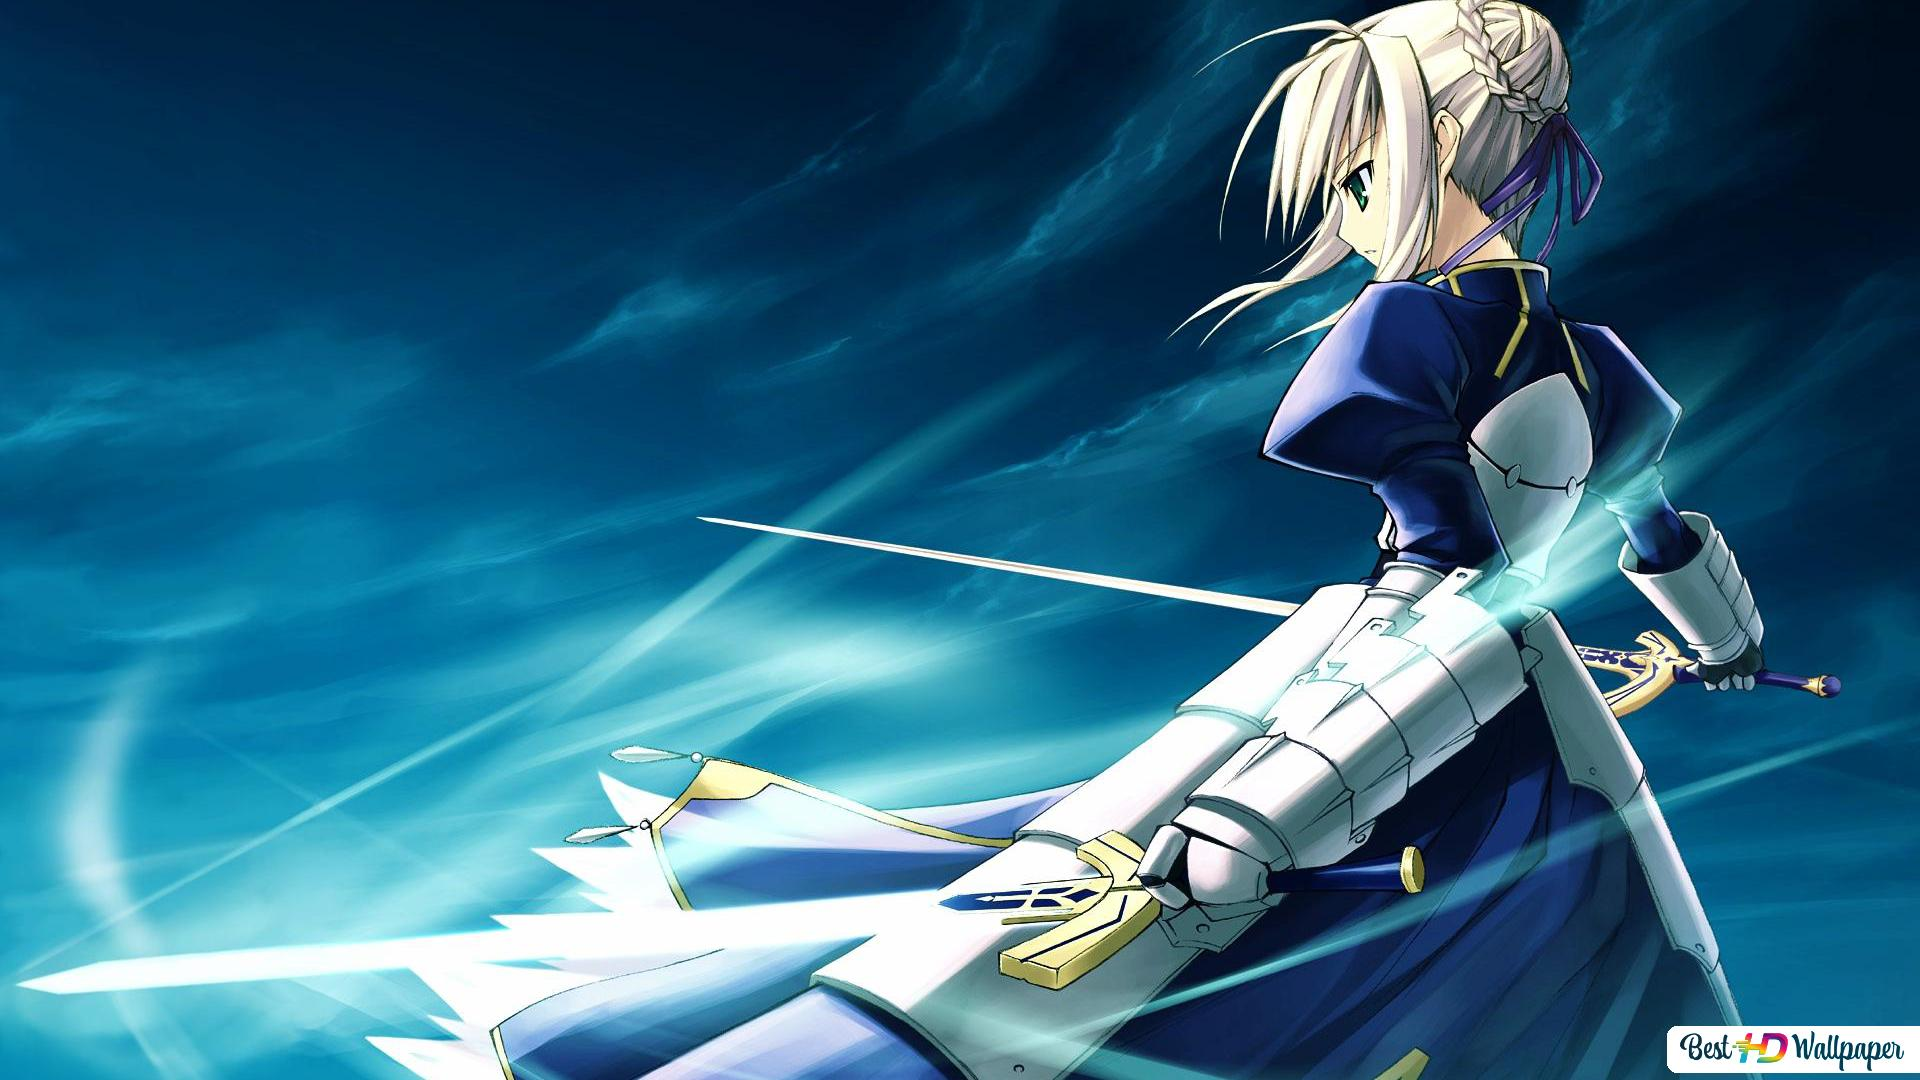 Fate Stay Night Saber Hd Wallpaper Download